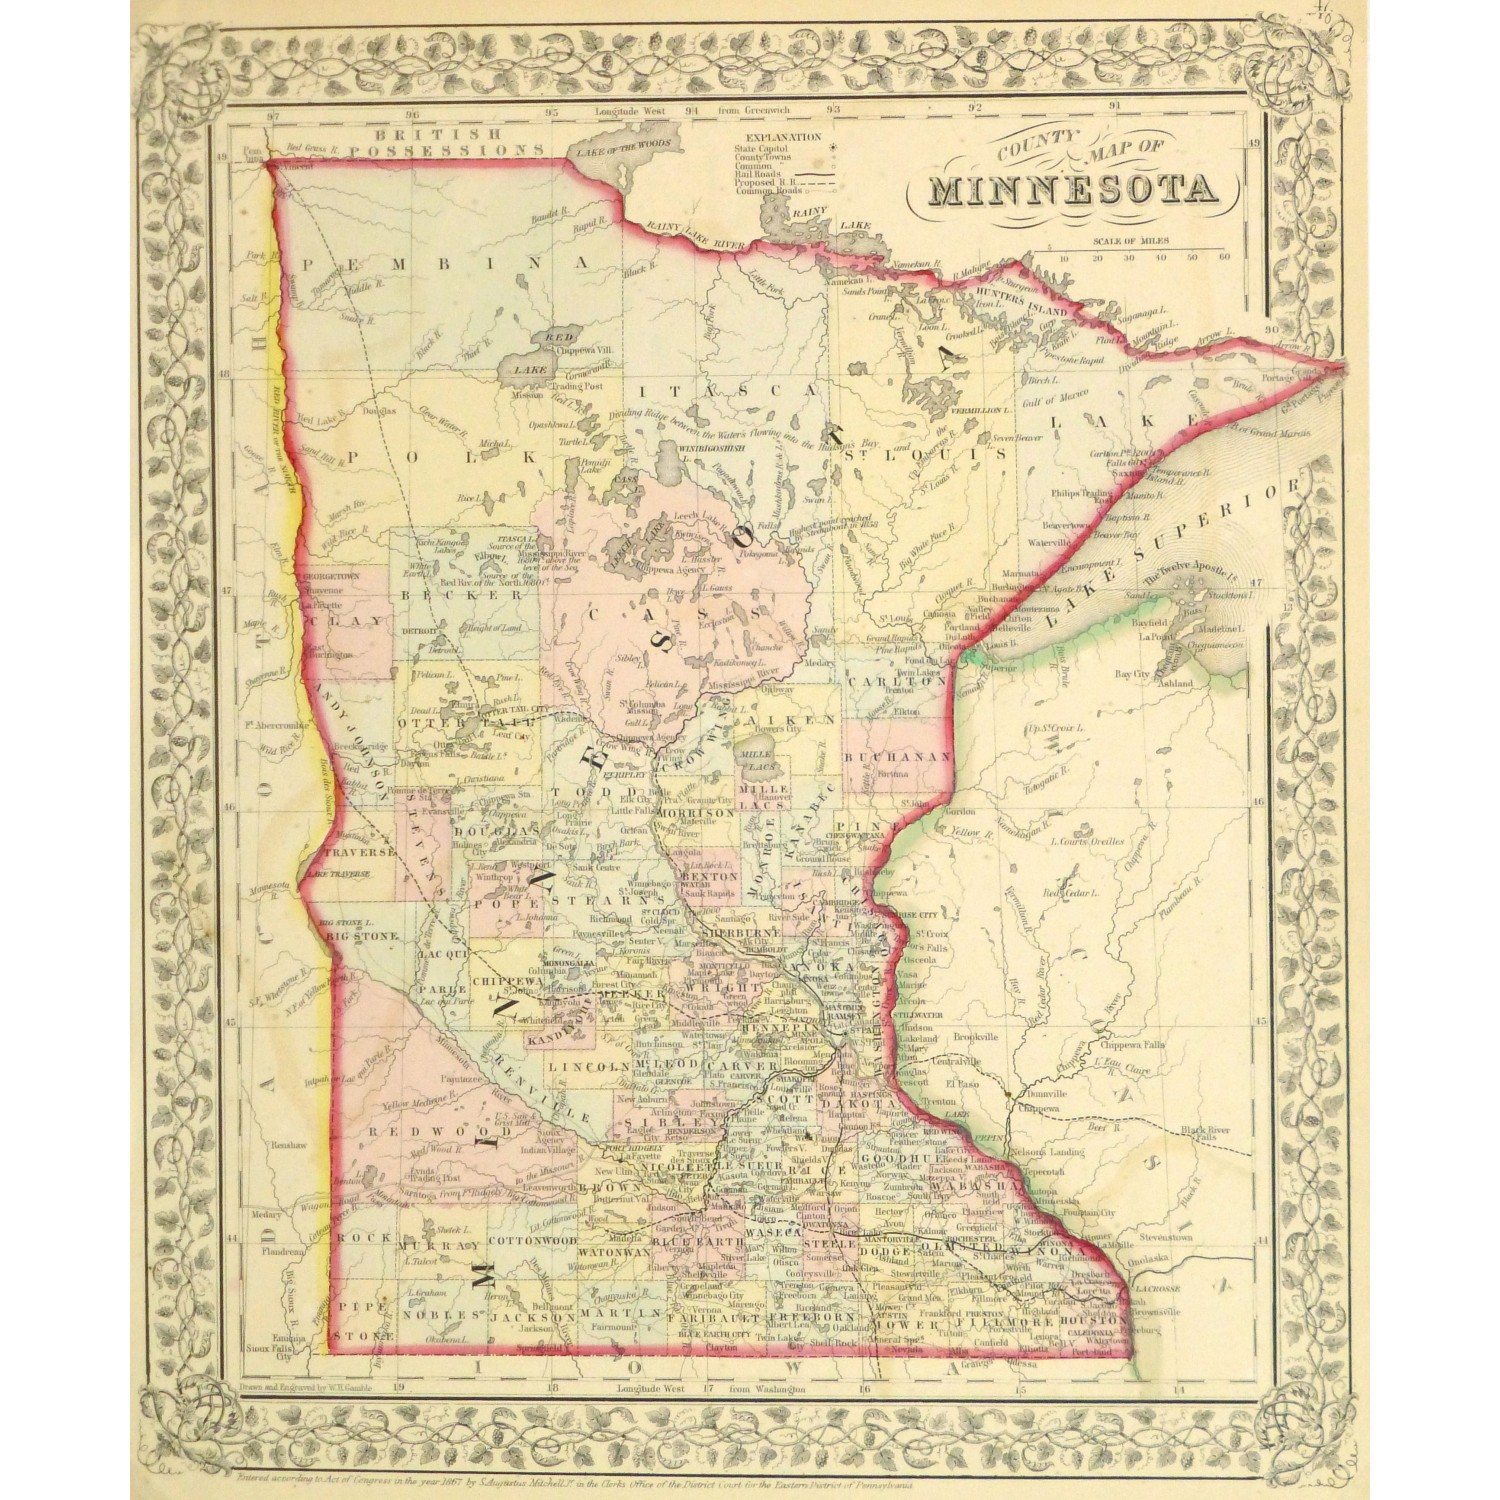 Original Antique Map of Minnesota by Mitchell 9270m